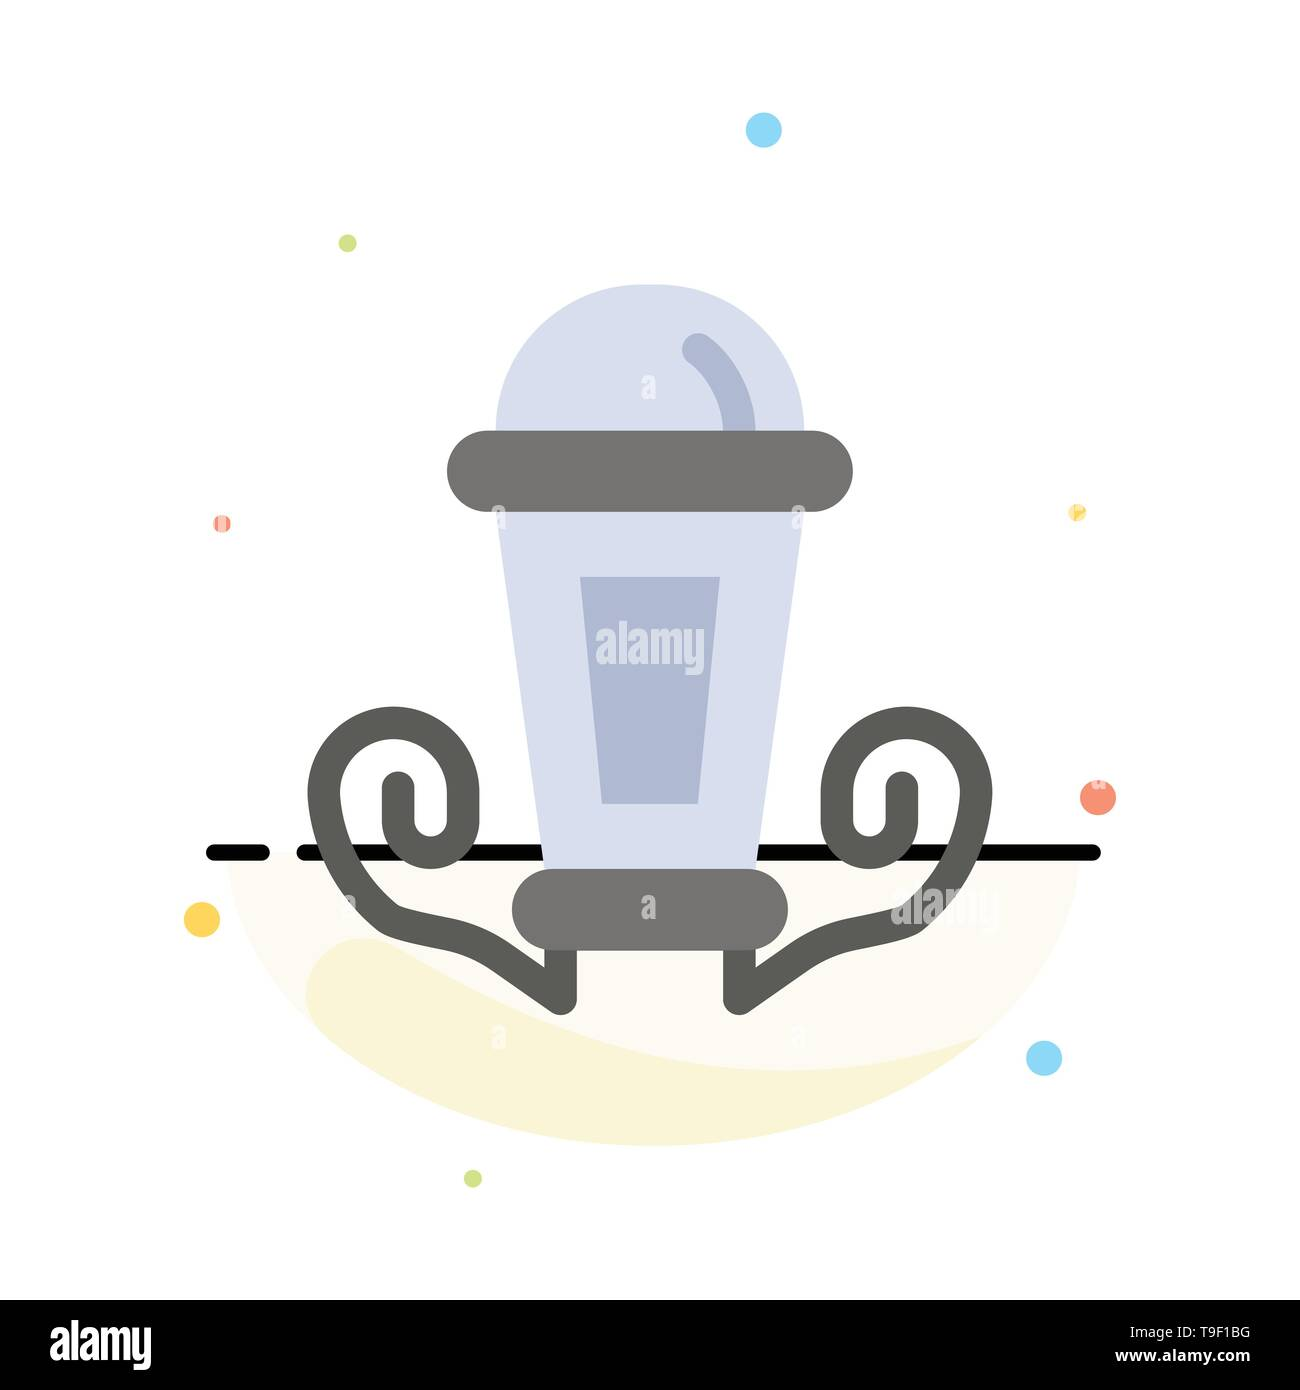 Light night lamp lantern abstract flat color icon template stock vector